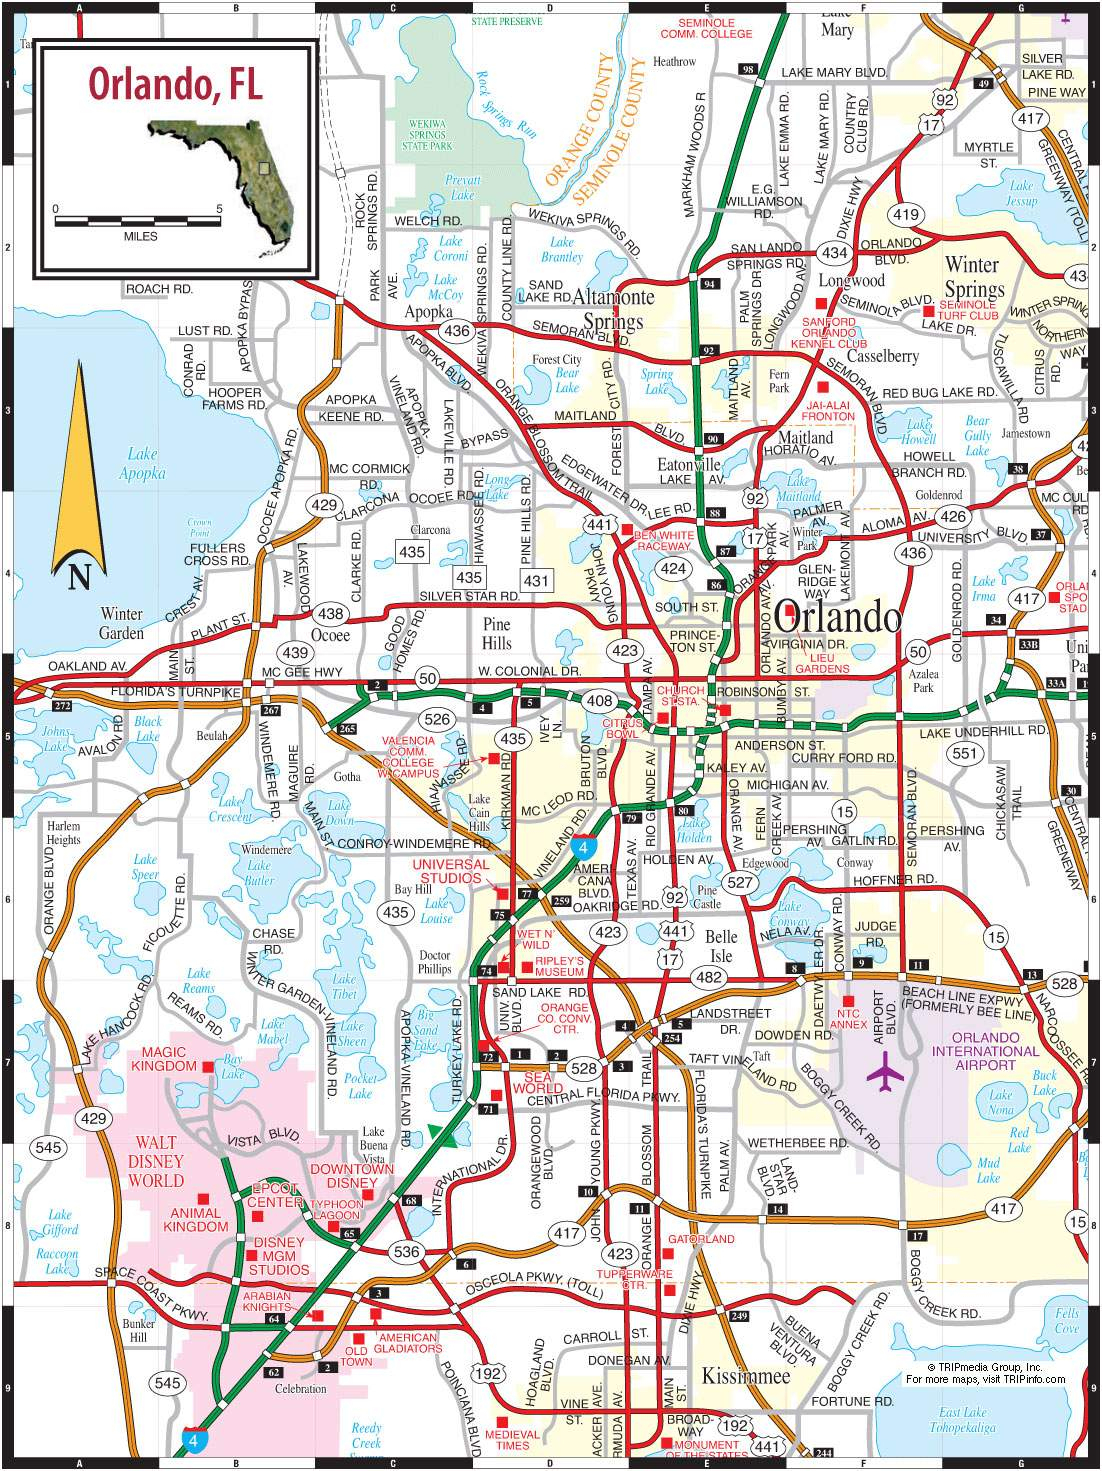 Large Orlando Maps For Free Download And Print | High-Resolution And - Map Of Orlando Florida Area